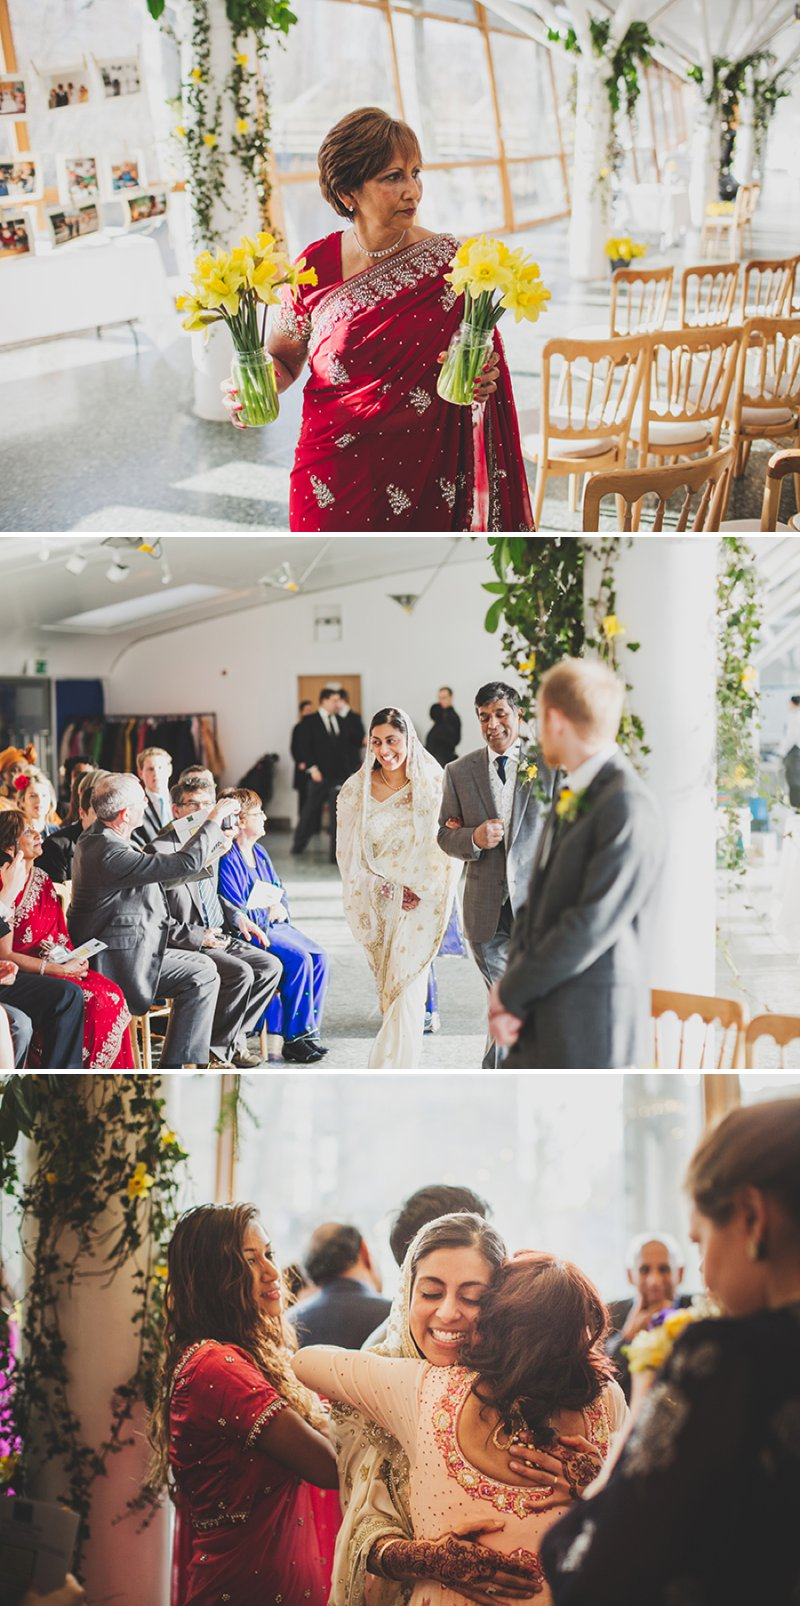 A Contemporary London Wedding With Vintage And Handmade Details With ...